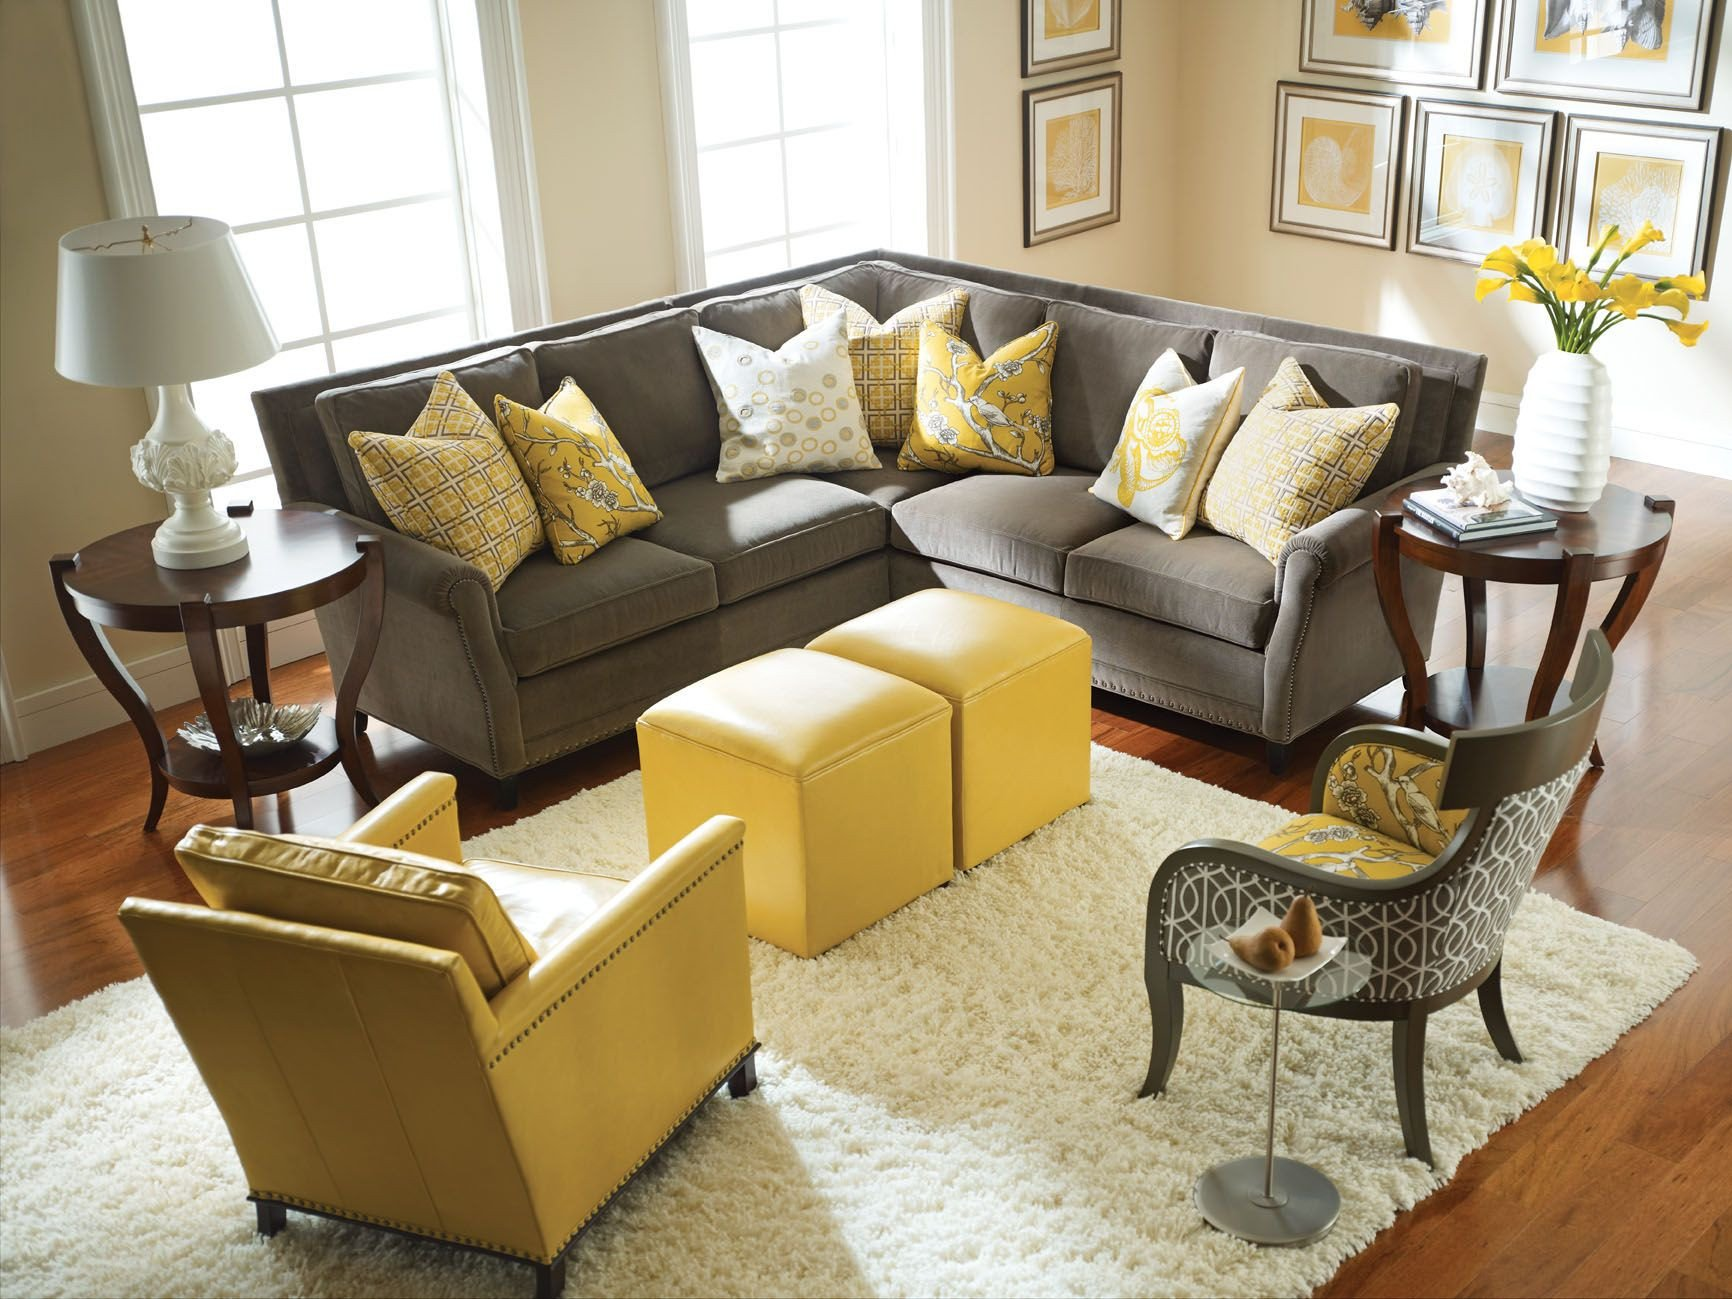 Grey and Yellow Decor Ideas Inspirational Yellow and Gray Rooms Decorating